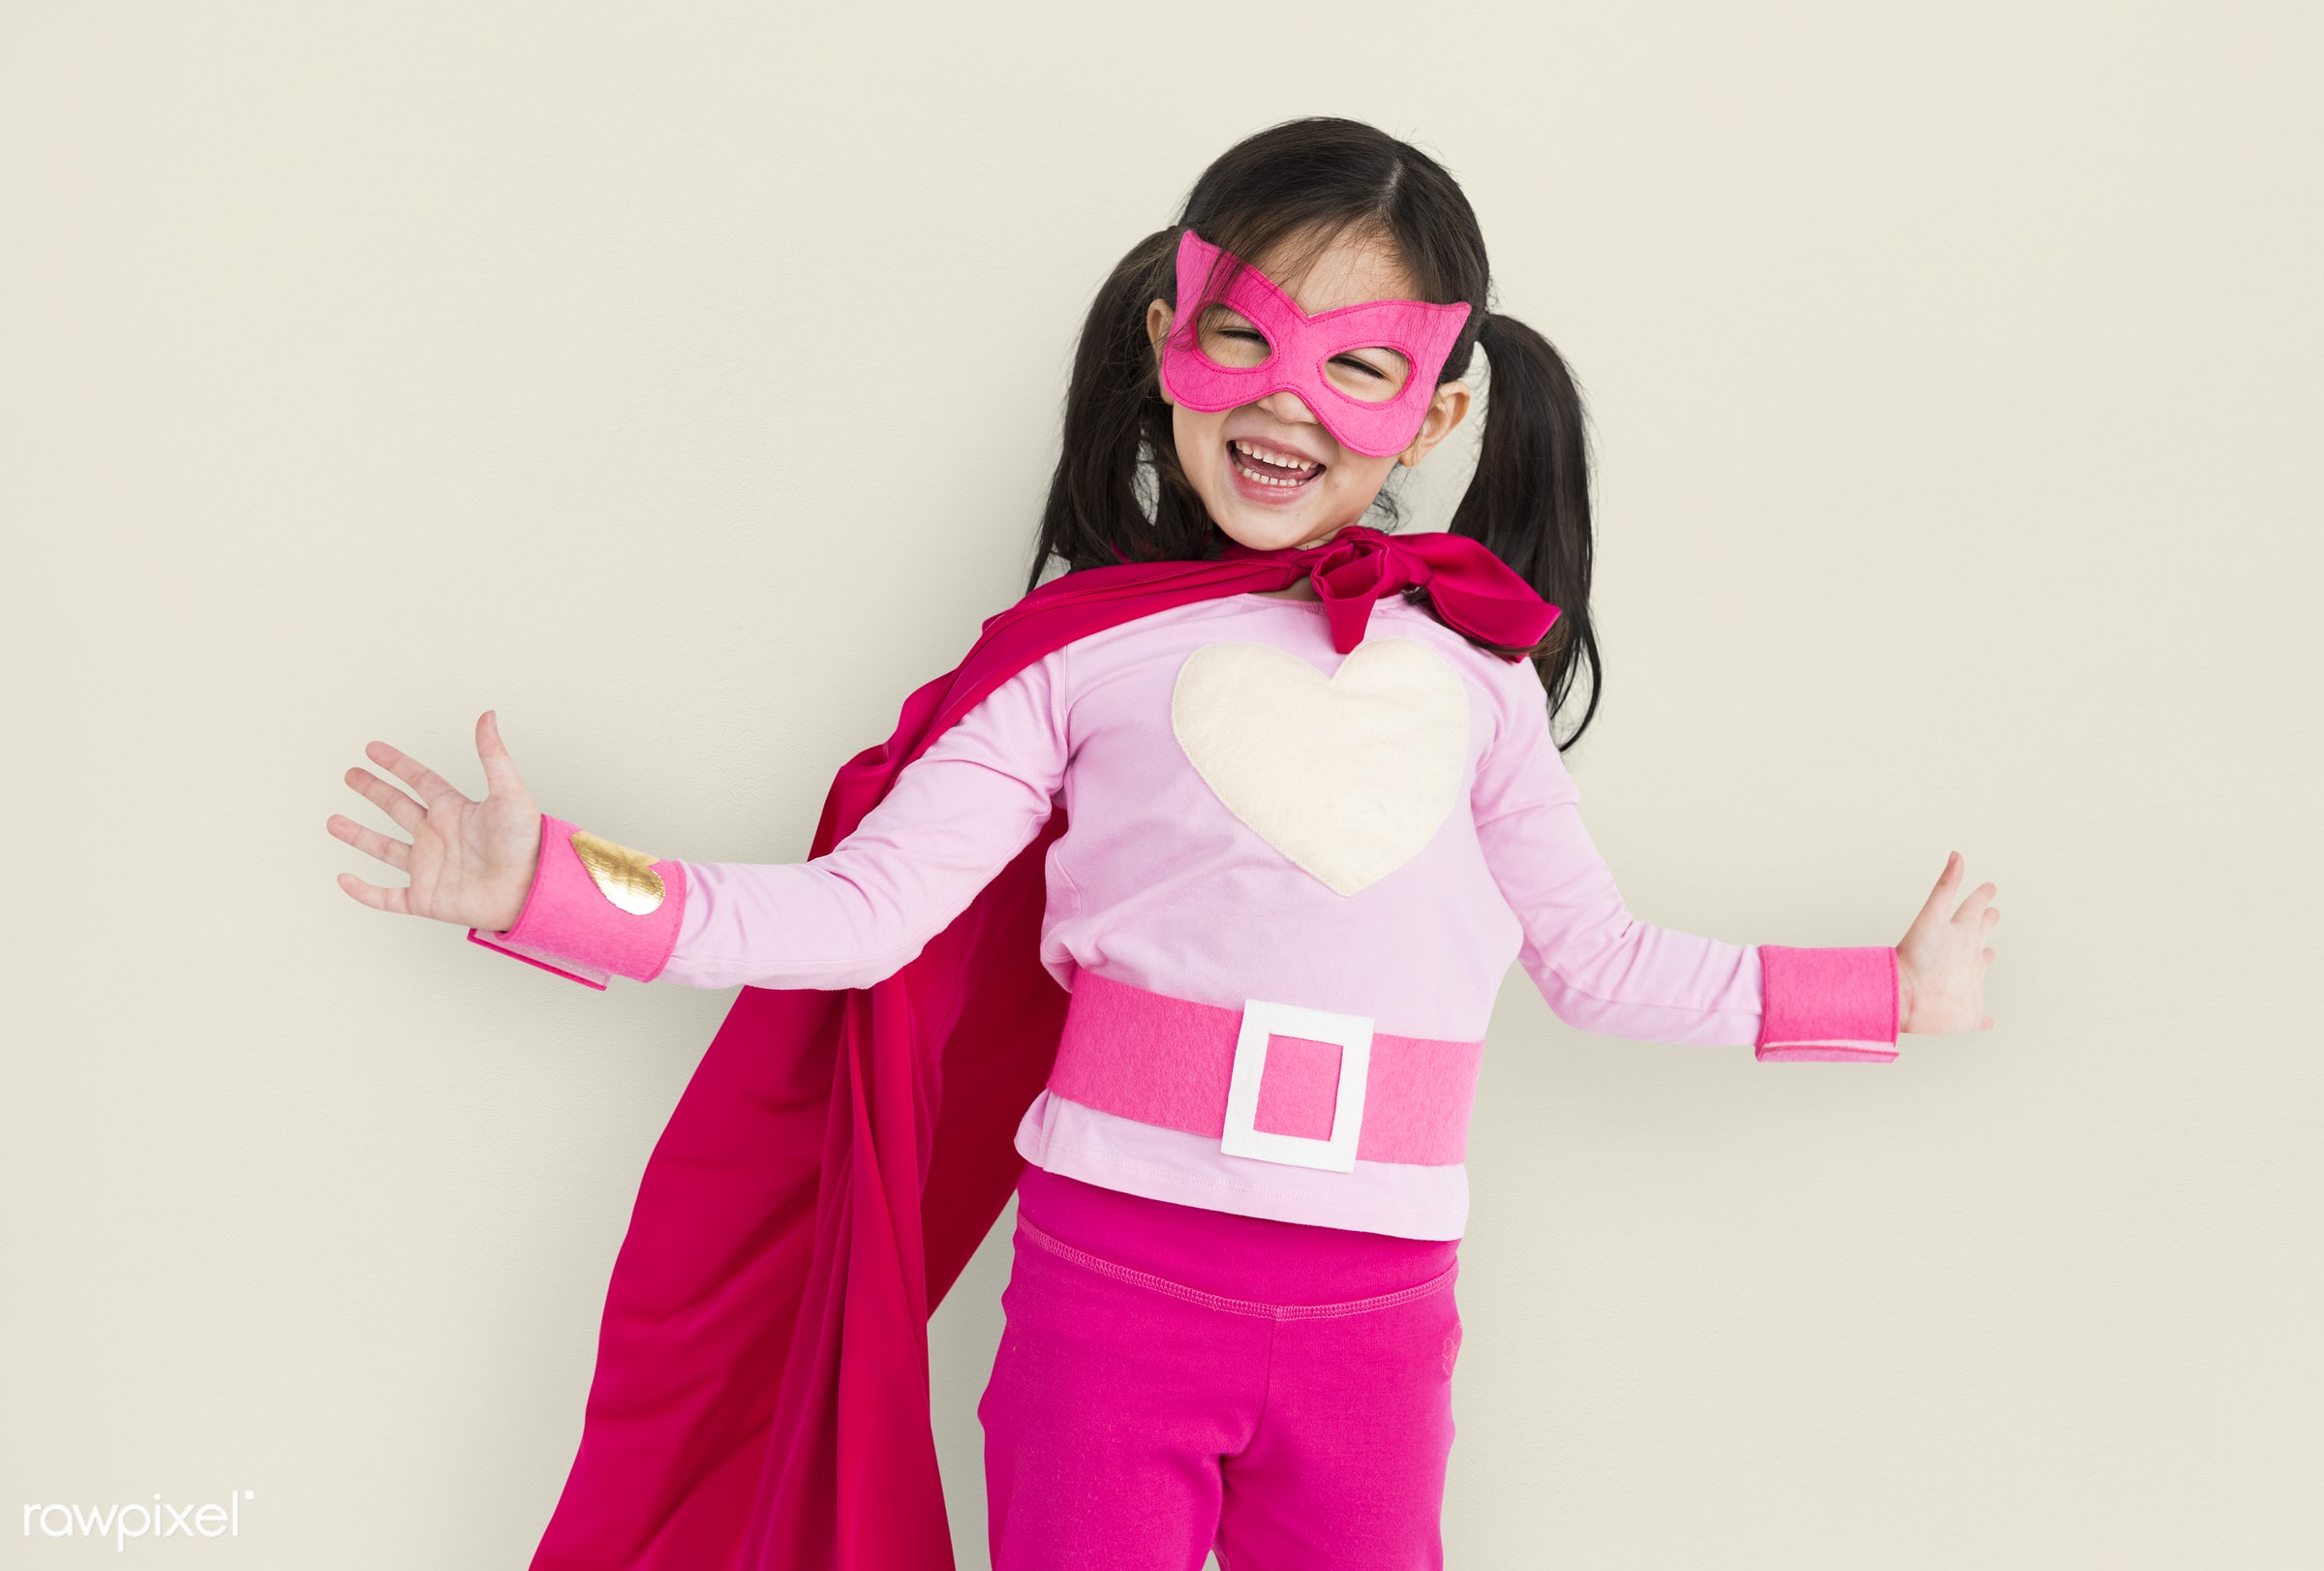 studio, person, model, children, race, people, kid, asian, child, girl, style, solo, lifestyle, casual, superhero, isolated...